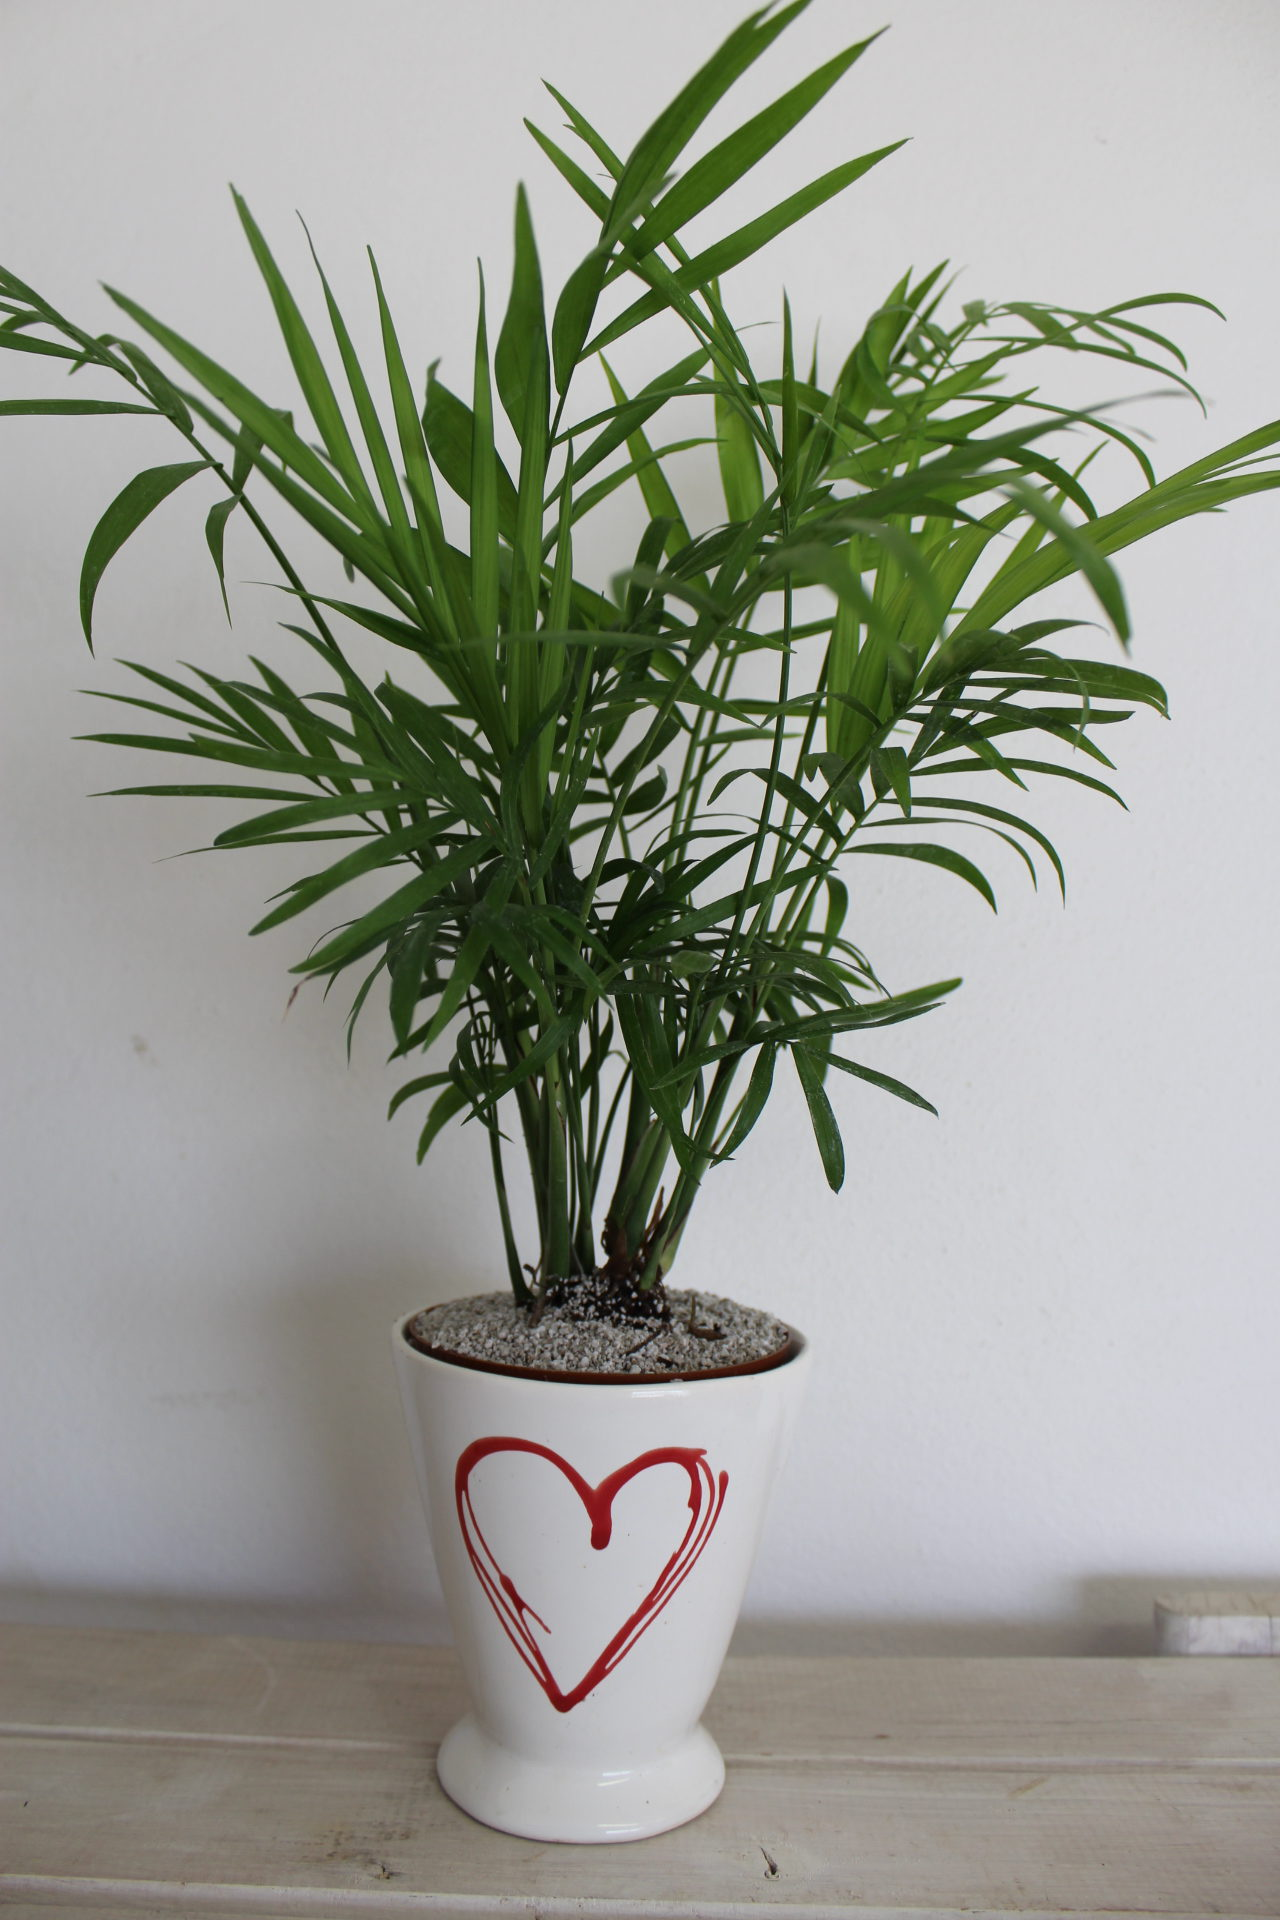 Indoor Plant Of The Month For February Mini Love Palm Life Is A Potted Decorative Plants Garden